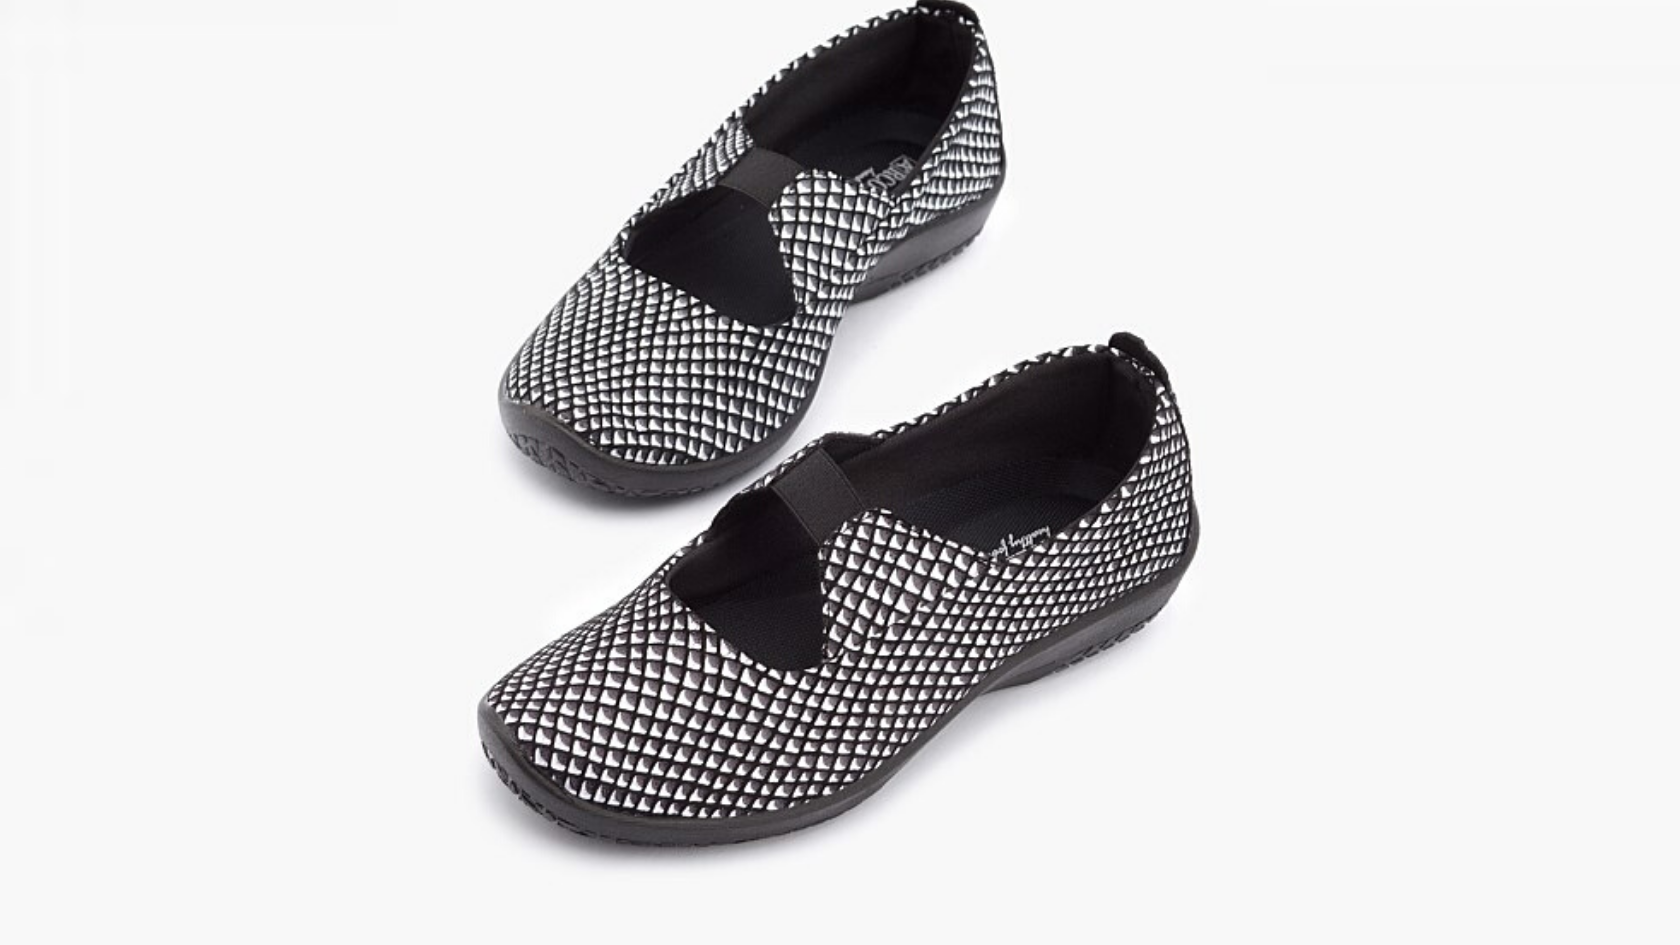 Pair of white/black geometric Leina's against a white background